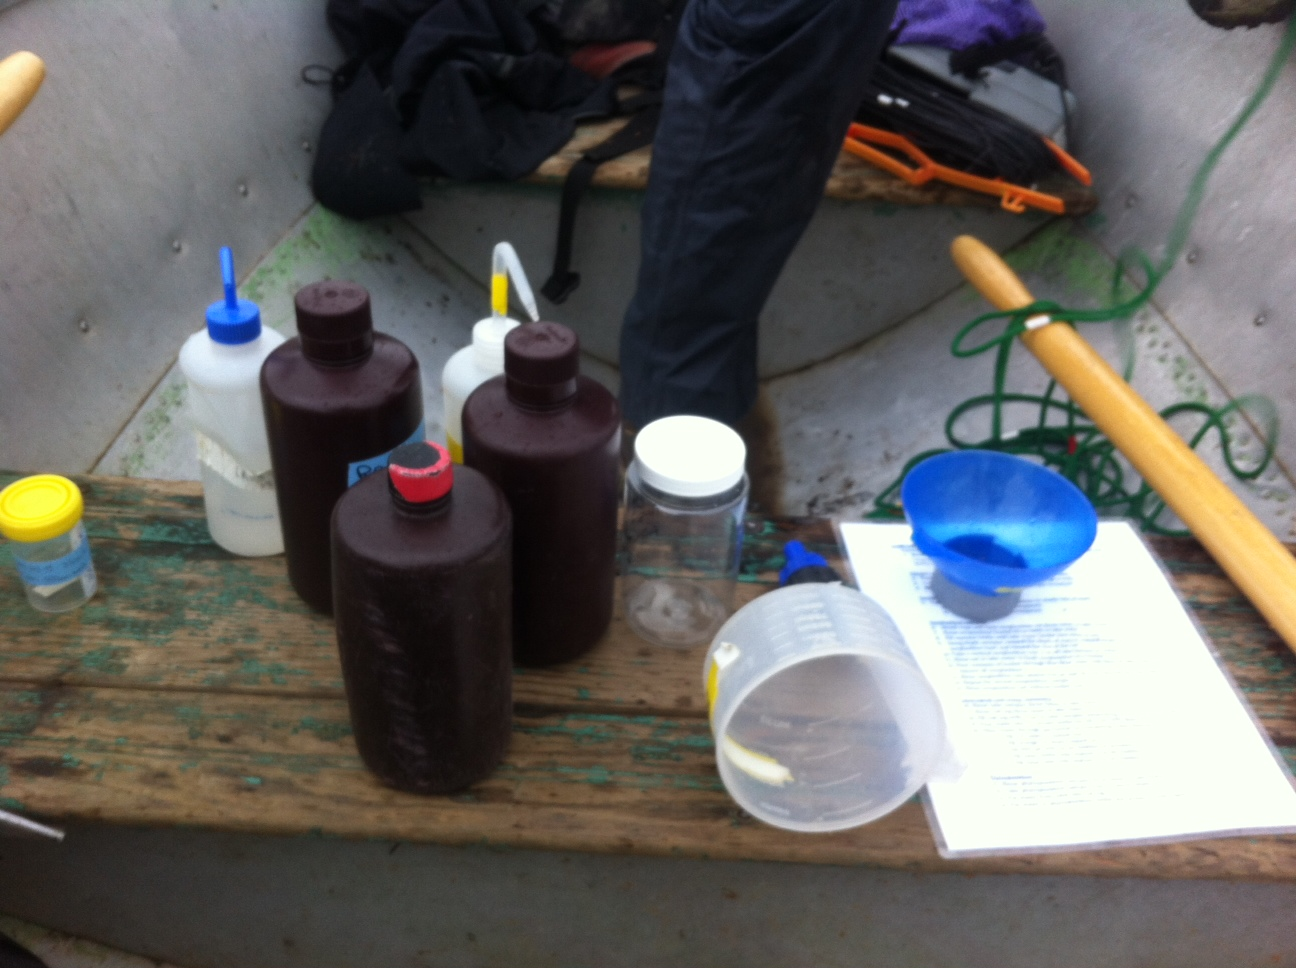 Field work in a boat: sampling gear laid out on the bench as we anchor in to the first field site.